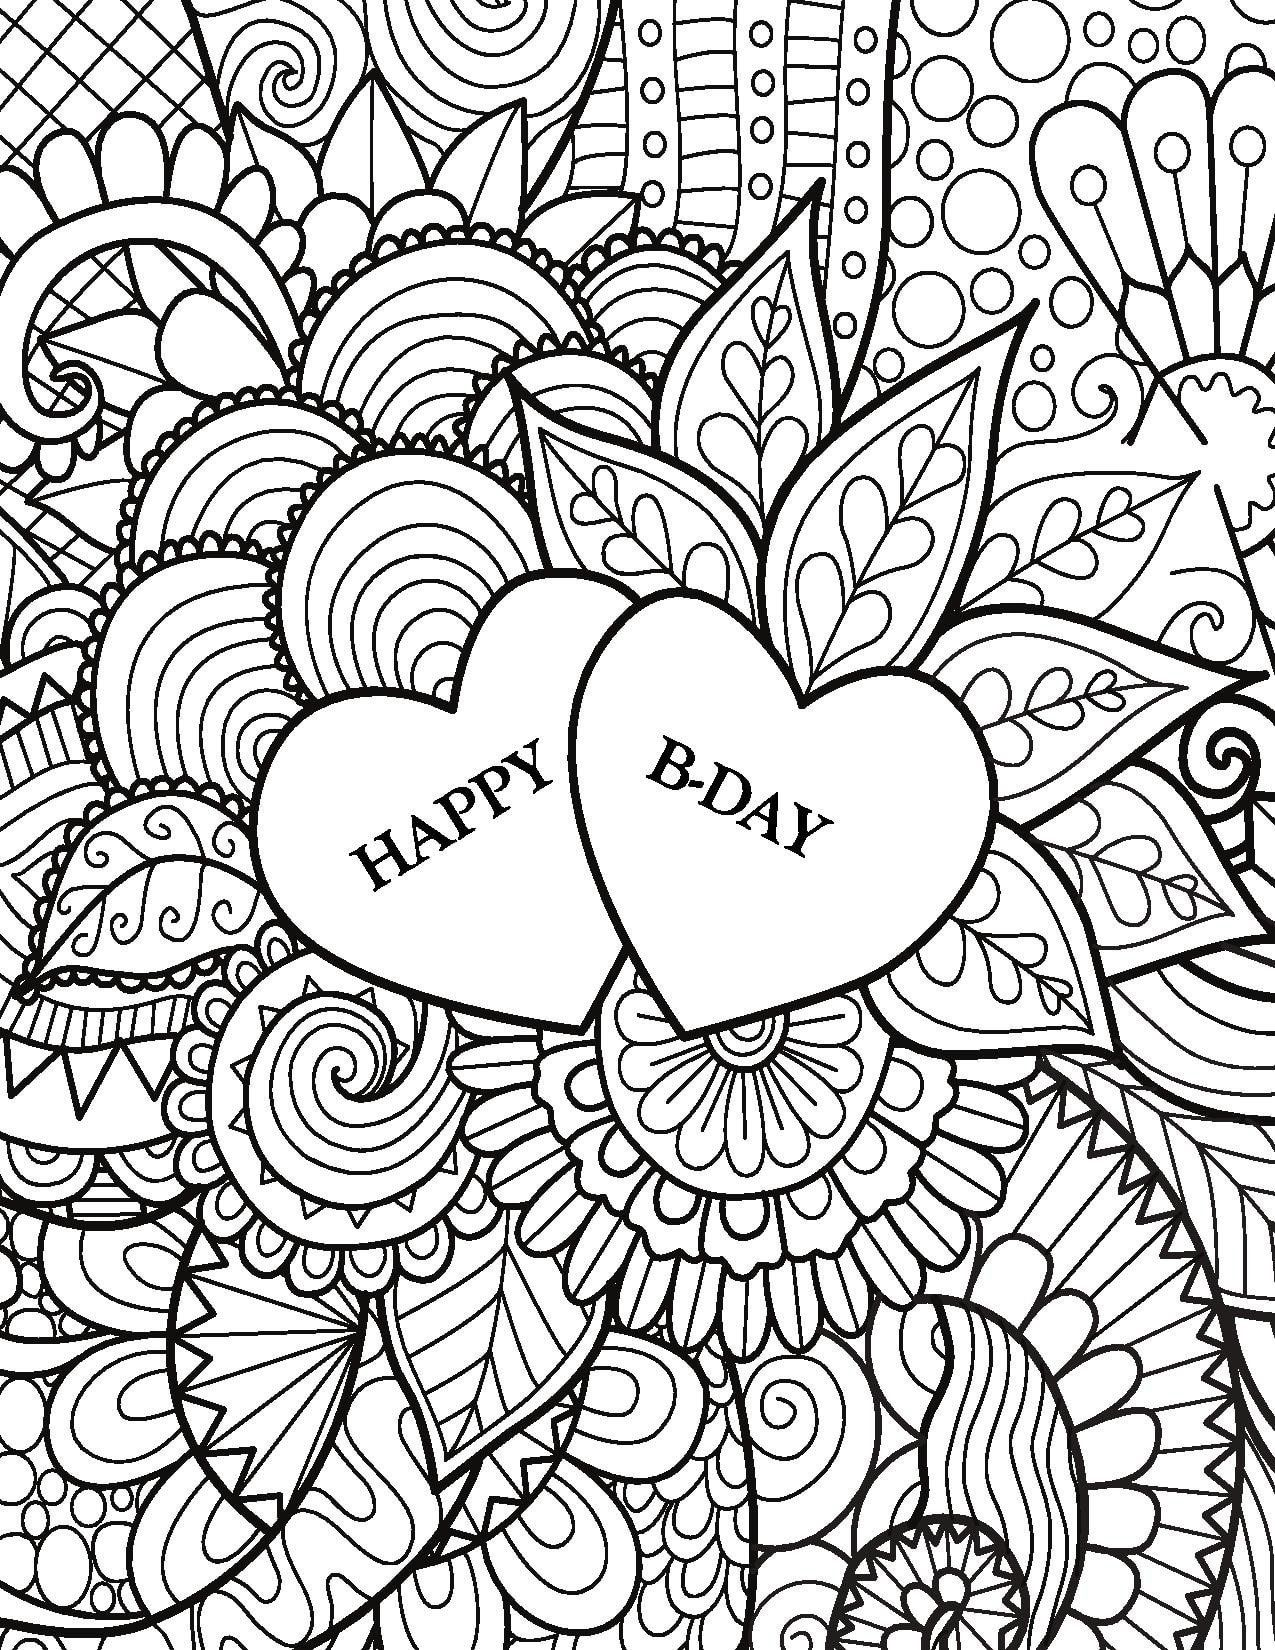 Let Coloring Book Zone Sweep You Away Into A World Of Calming Illustrations With Loving Birthday Wishes To He Coloring Books Colorful Art Toddler Coloring Book